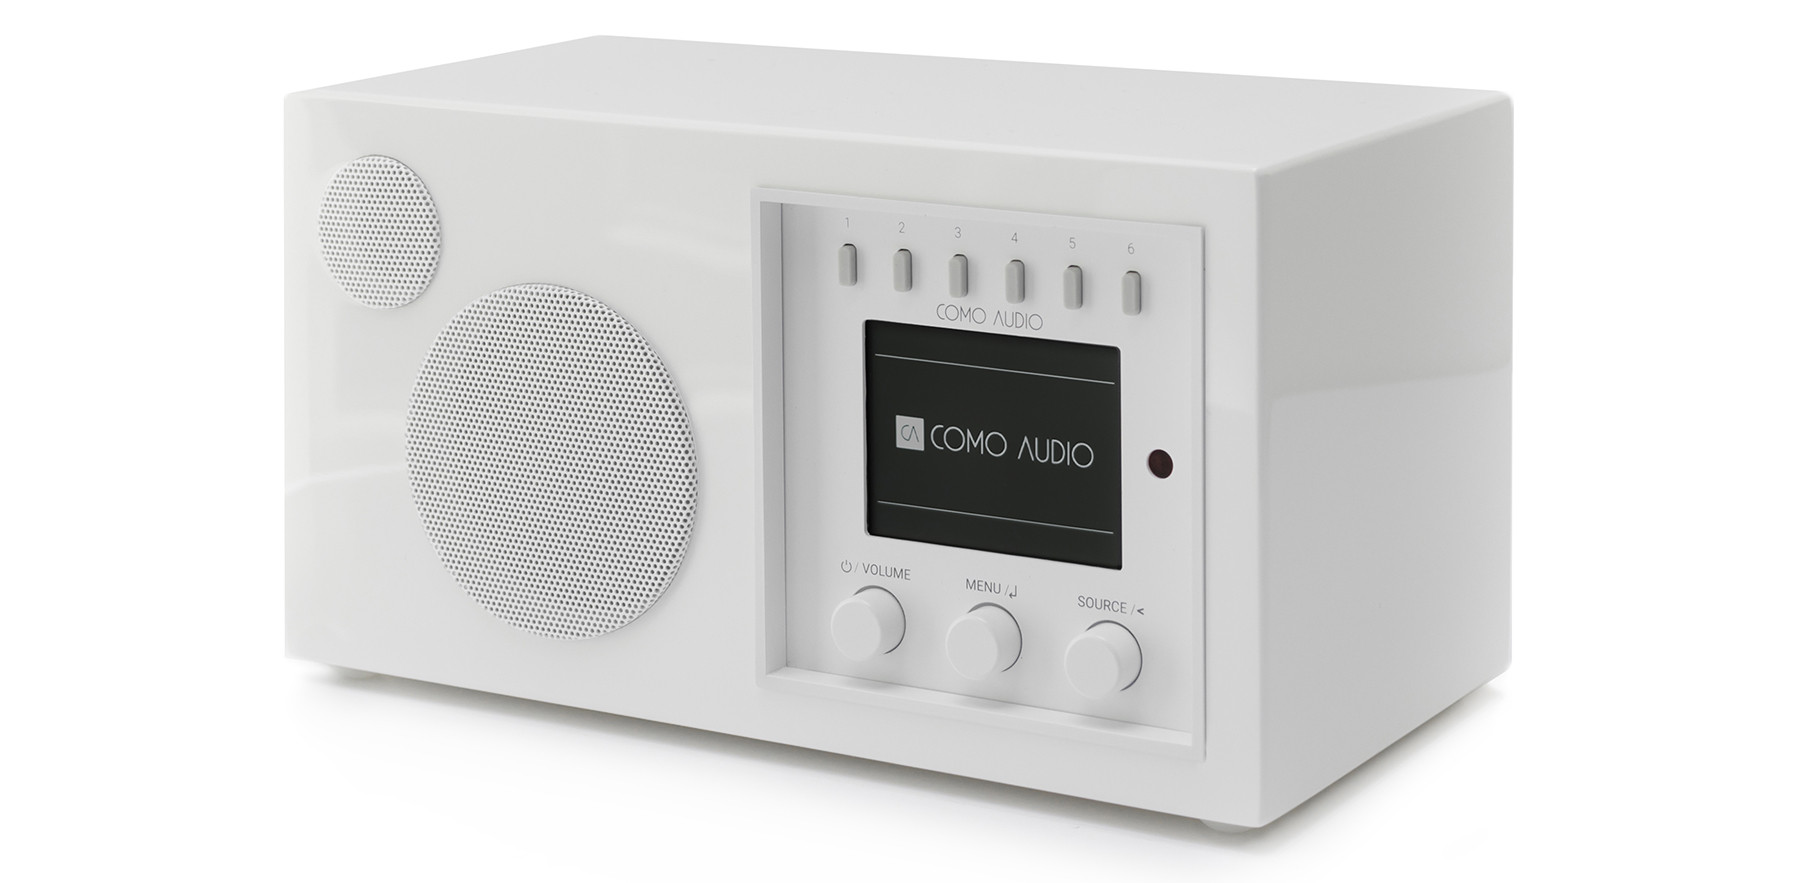 como audio solo dab radio mit bluetooth wifi spotify. Black Bedroom Furniture Sets. Home Design Ideas